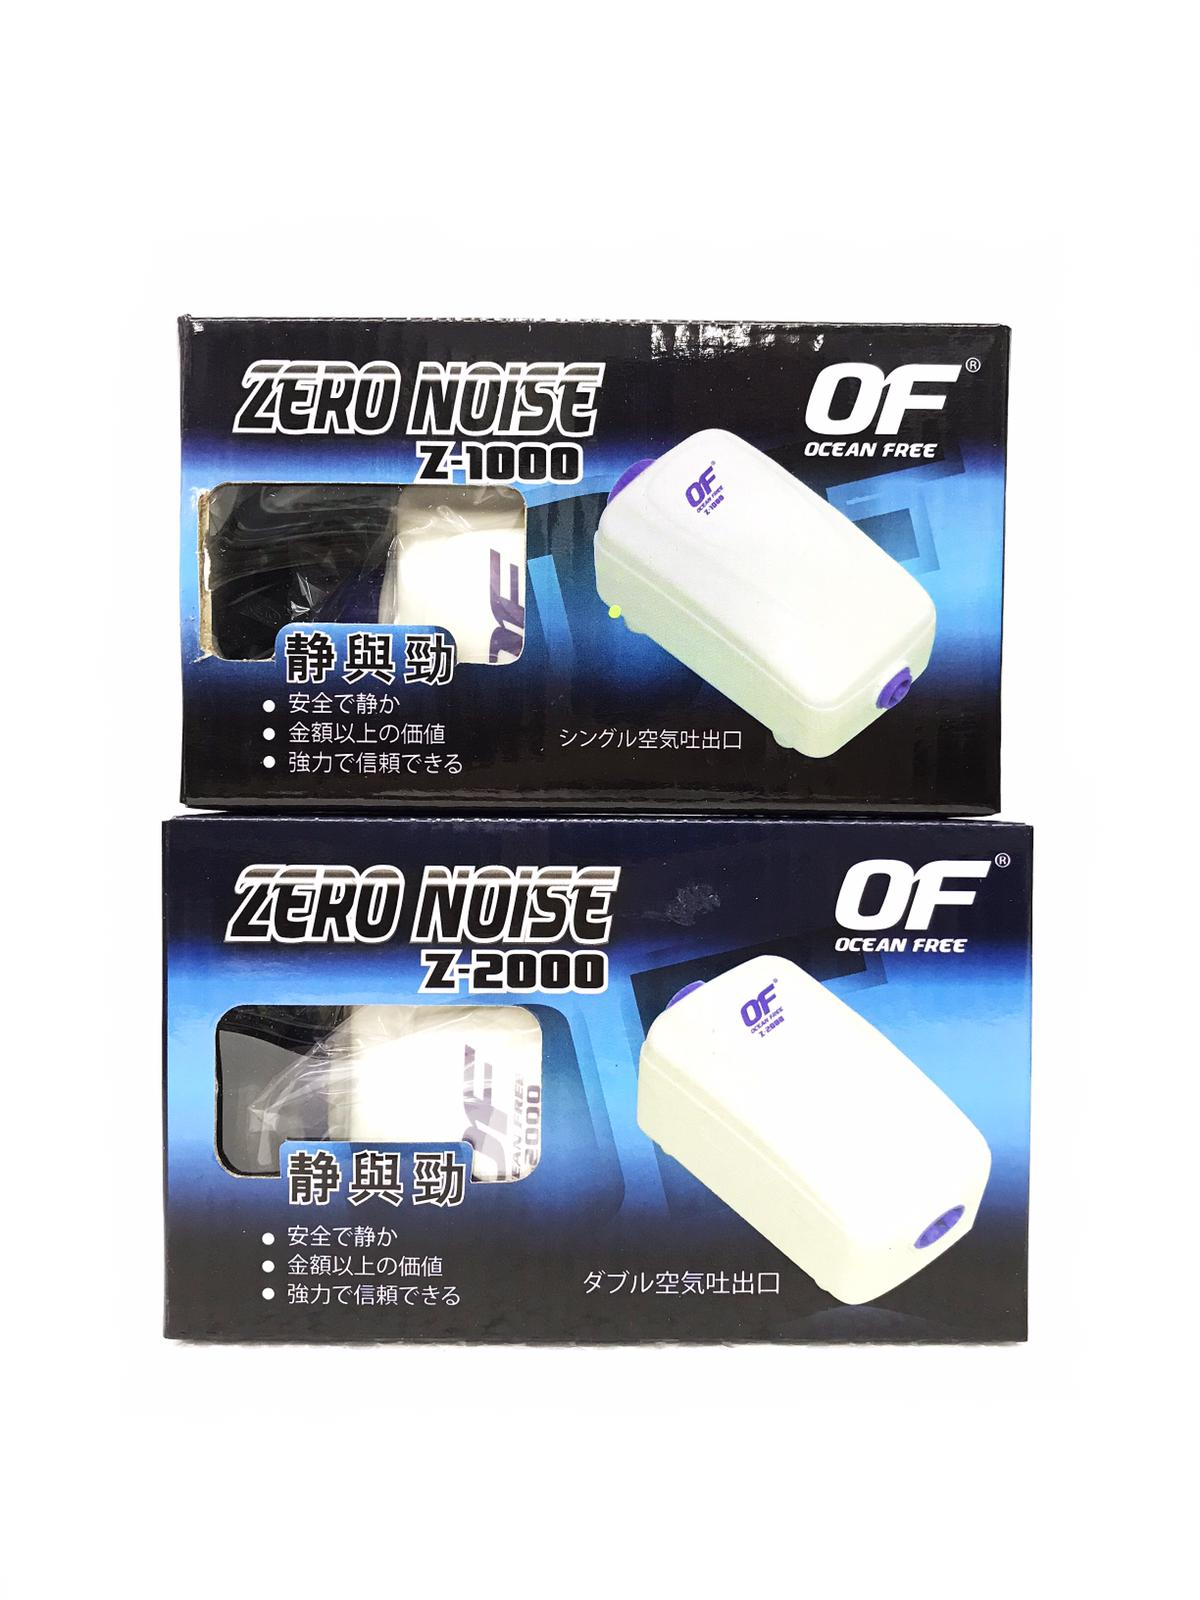 OF Zero Noise Air Pump